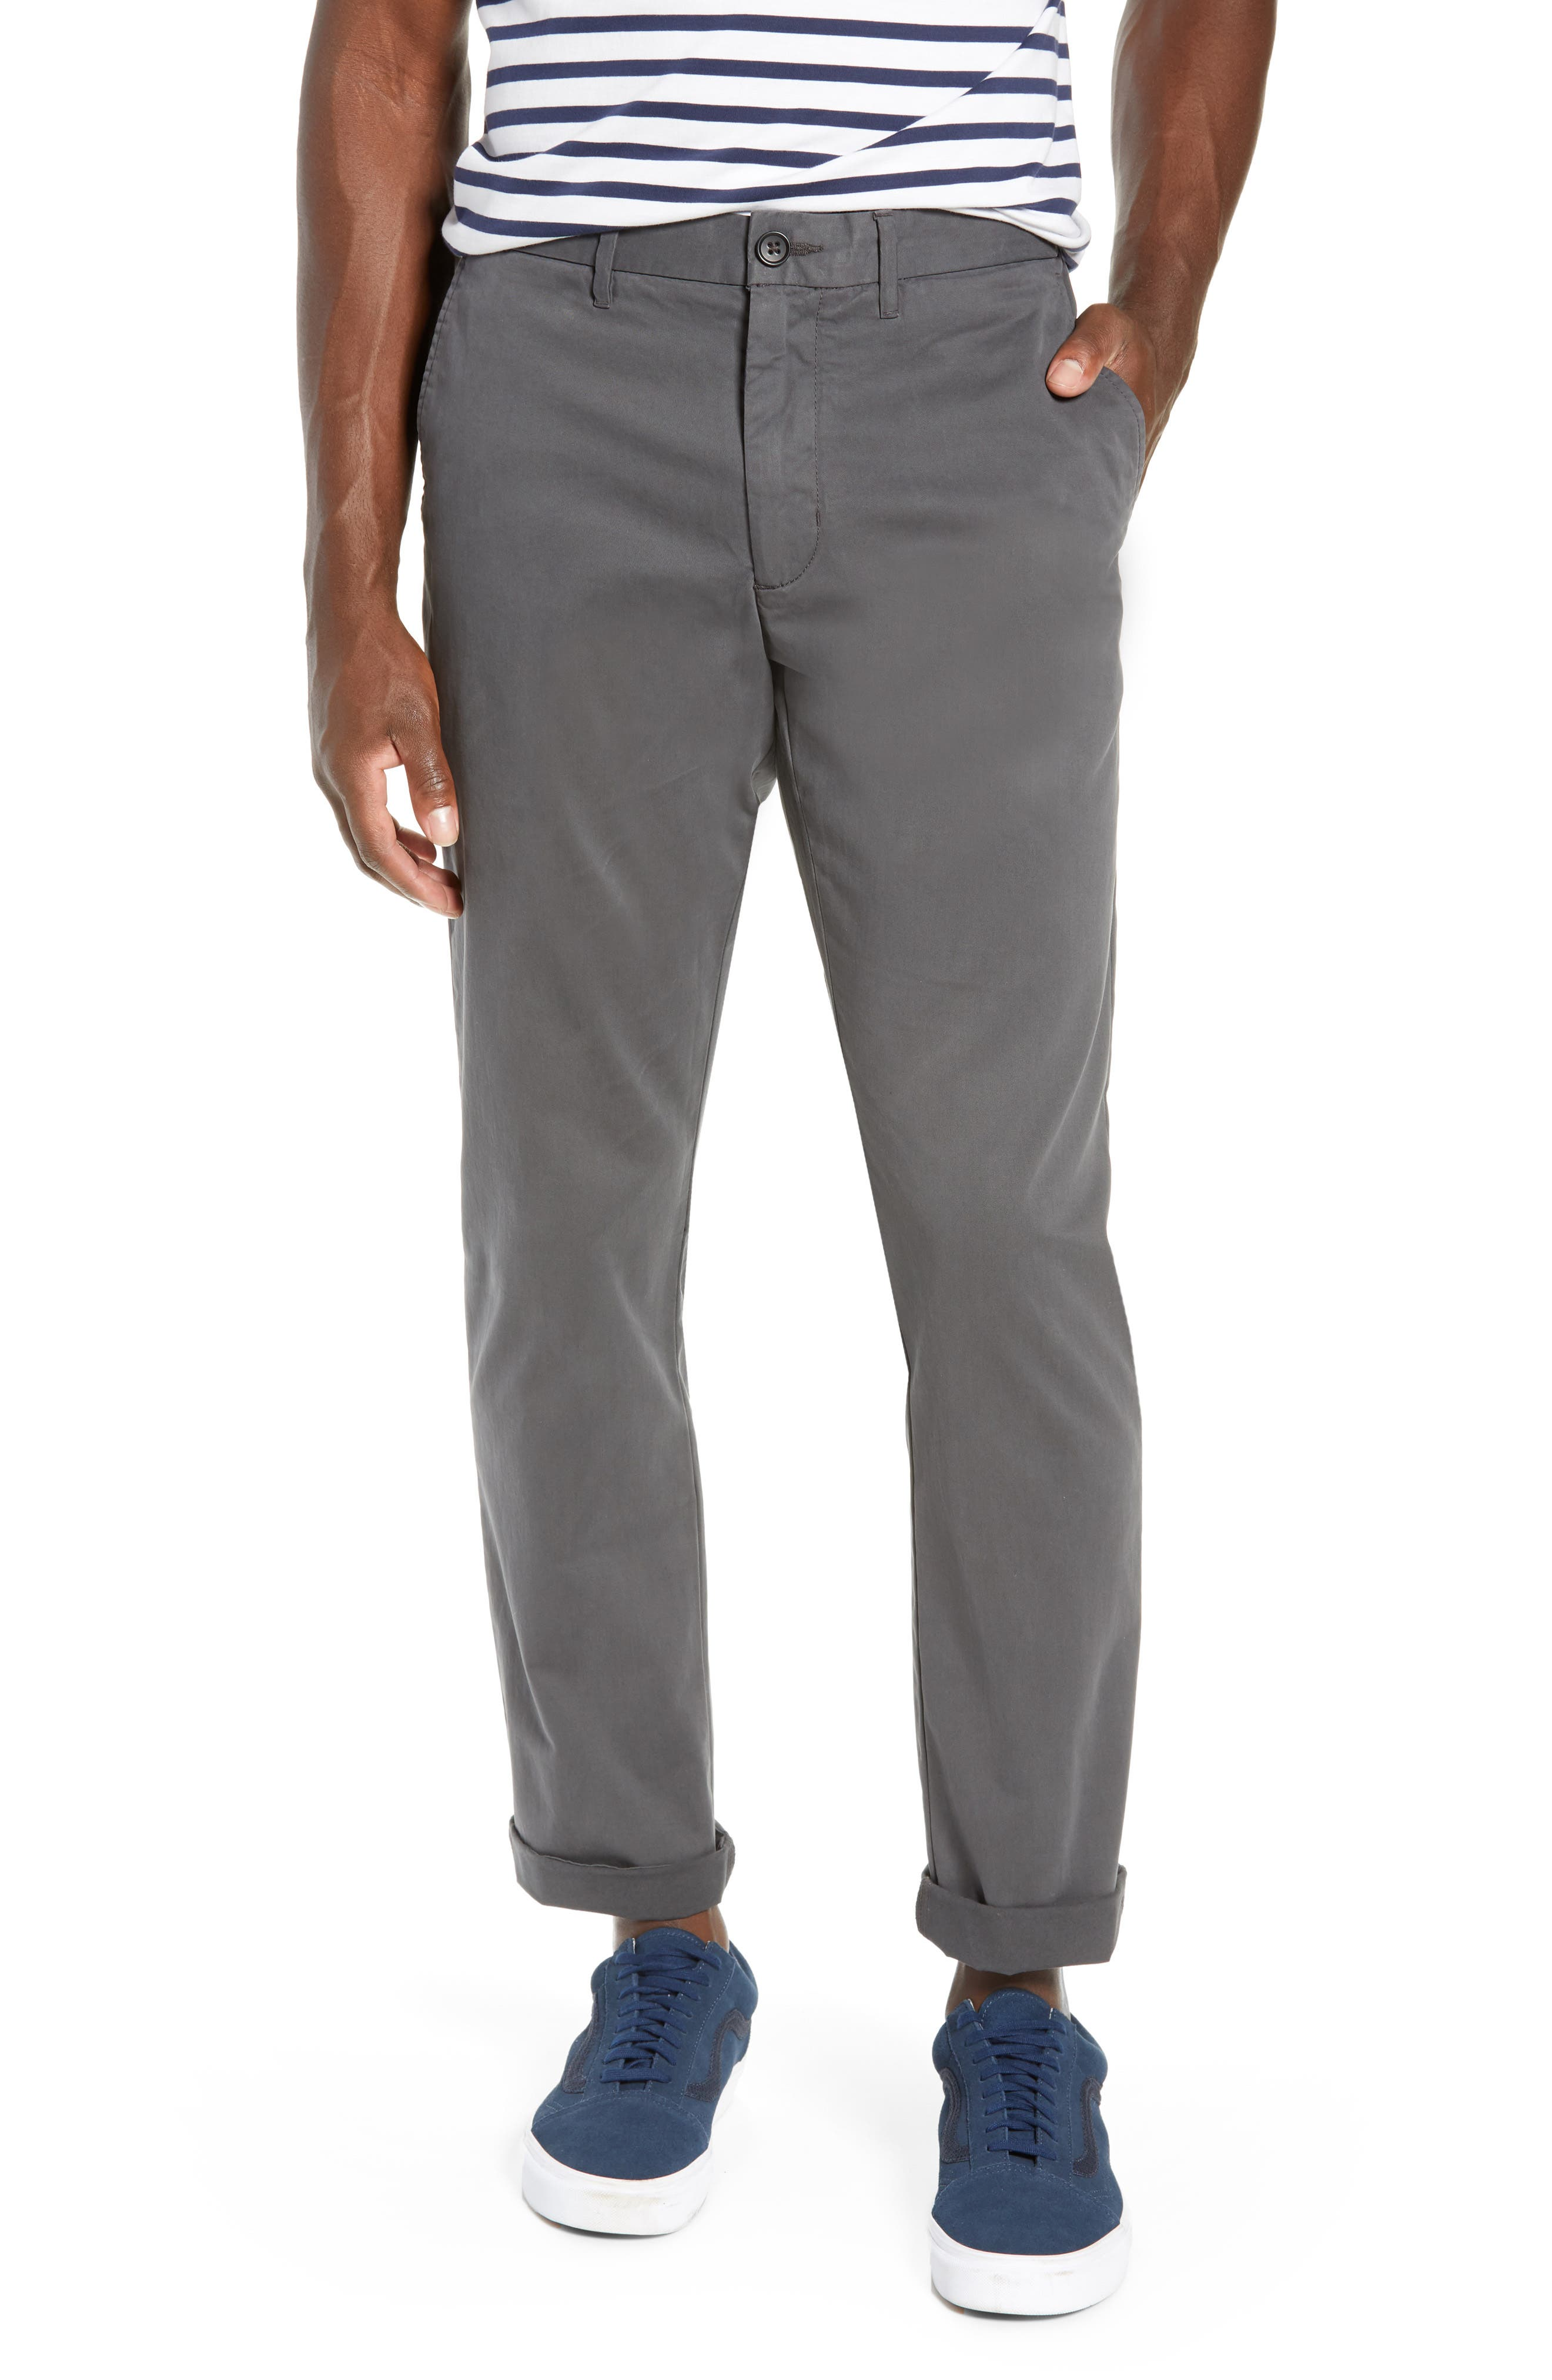 Fremont Flat Front Slim Fit Stretch Chino Pants,                             Main thumbnail 1, color,                             GREY ONYX